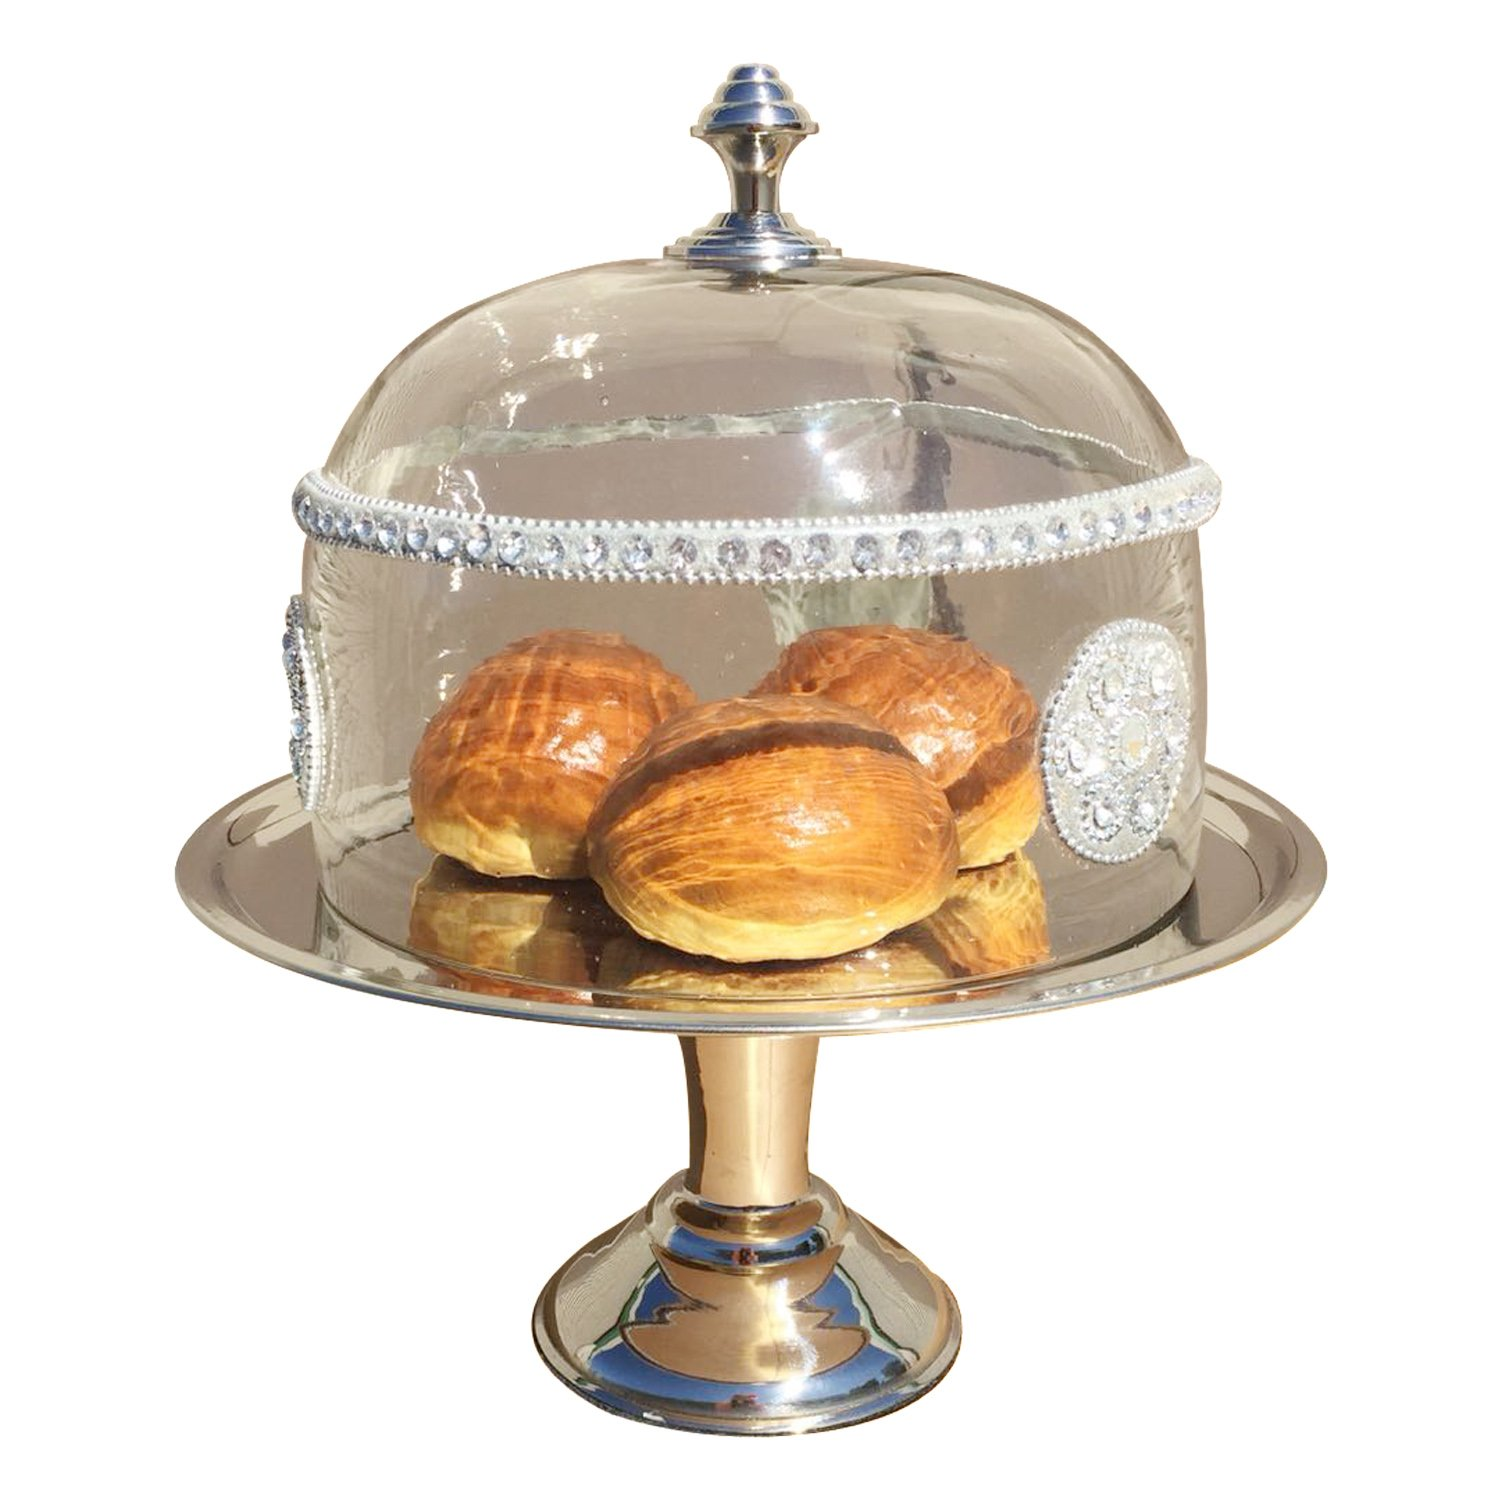 GiftBay Wedding Cake Stand Round Pedestal Stainless Steel 10'' Diameter on Top, about 5'' Height (Stand)